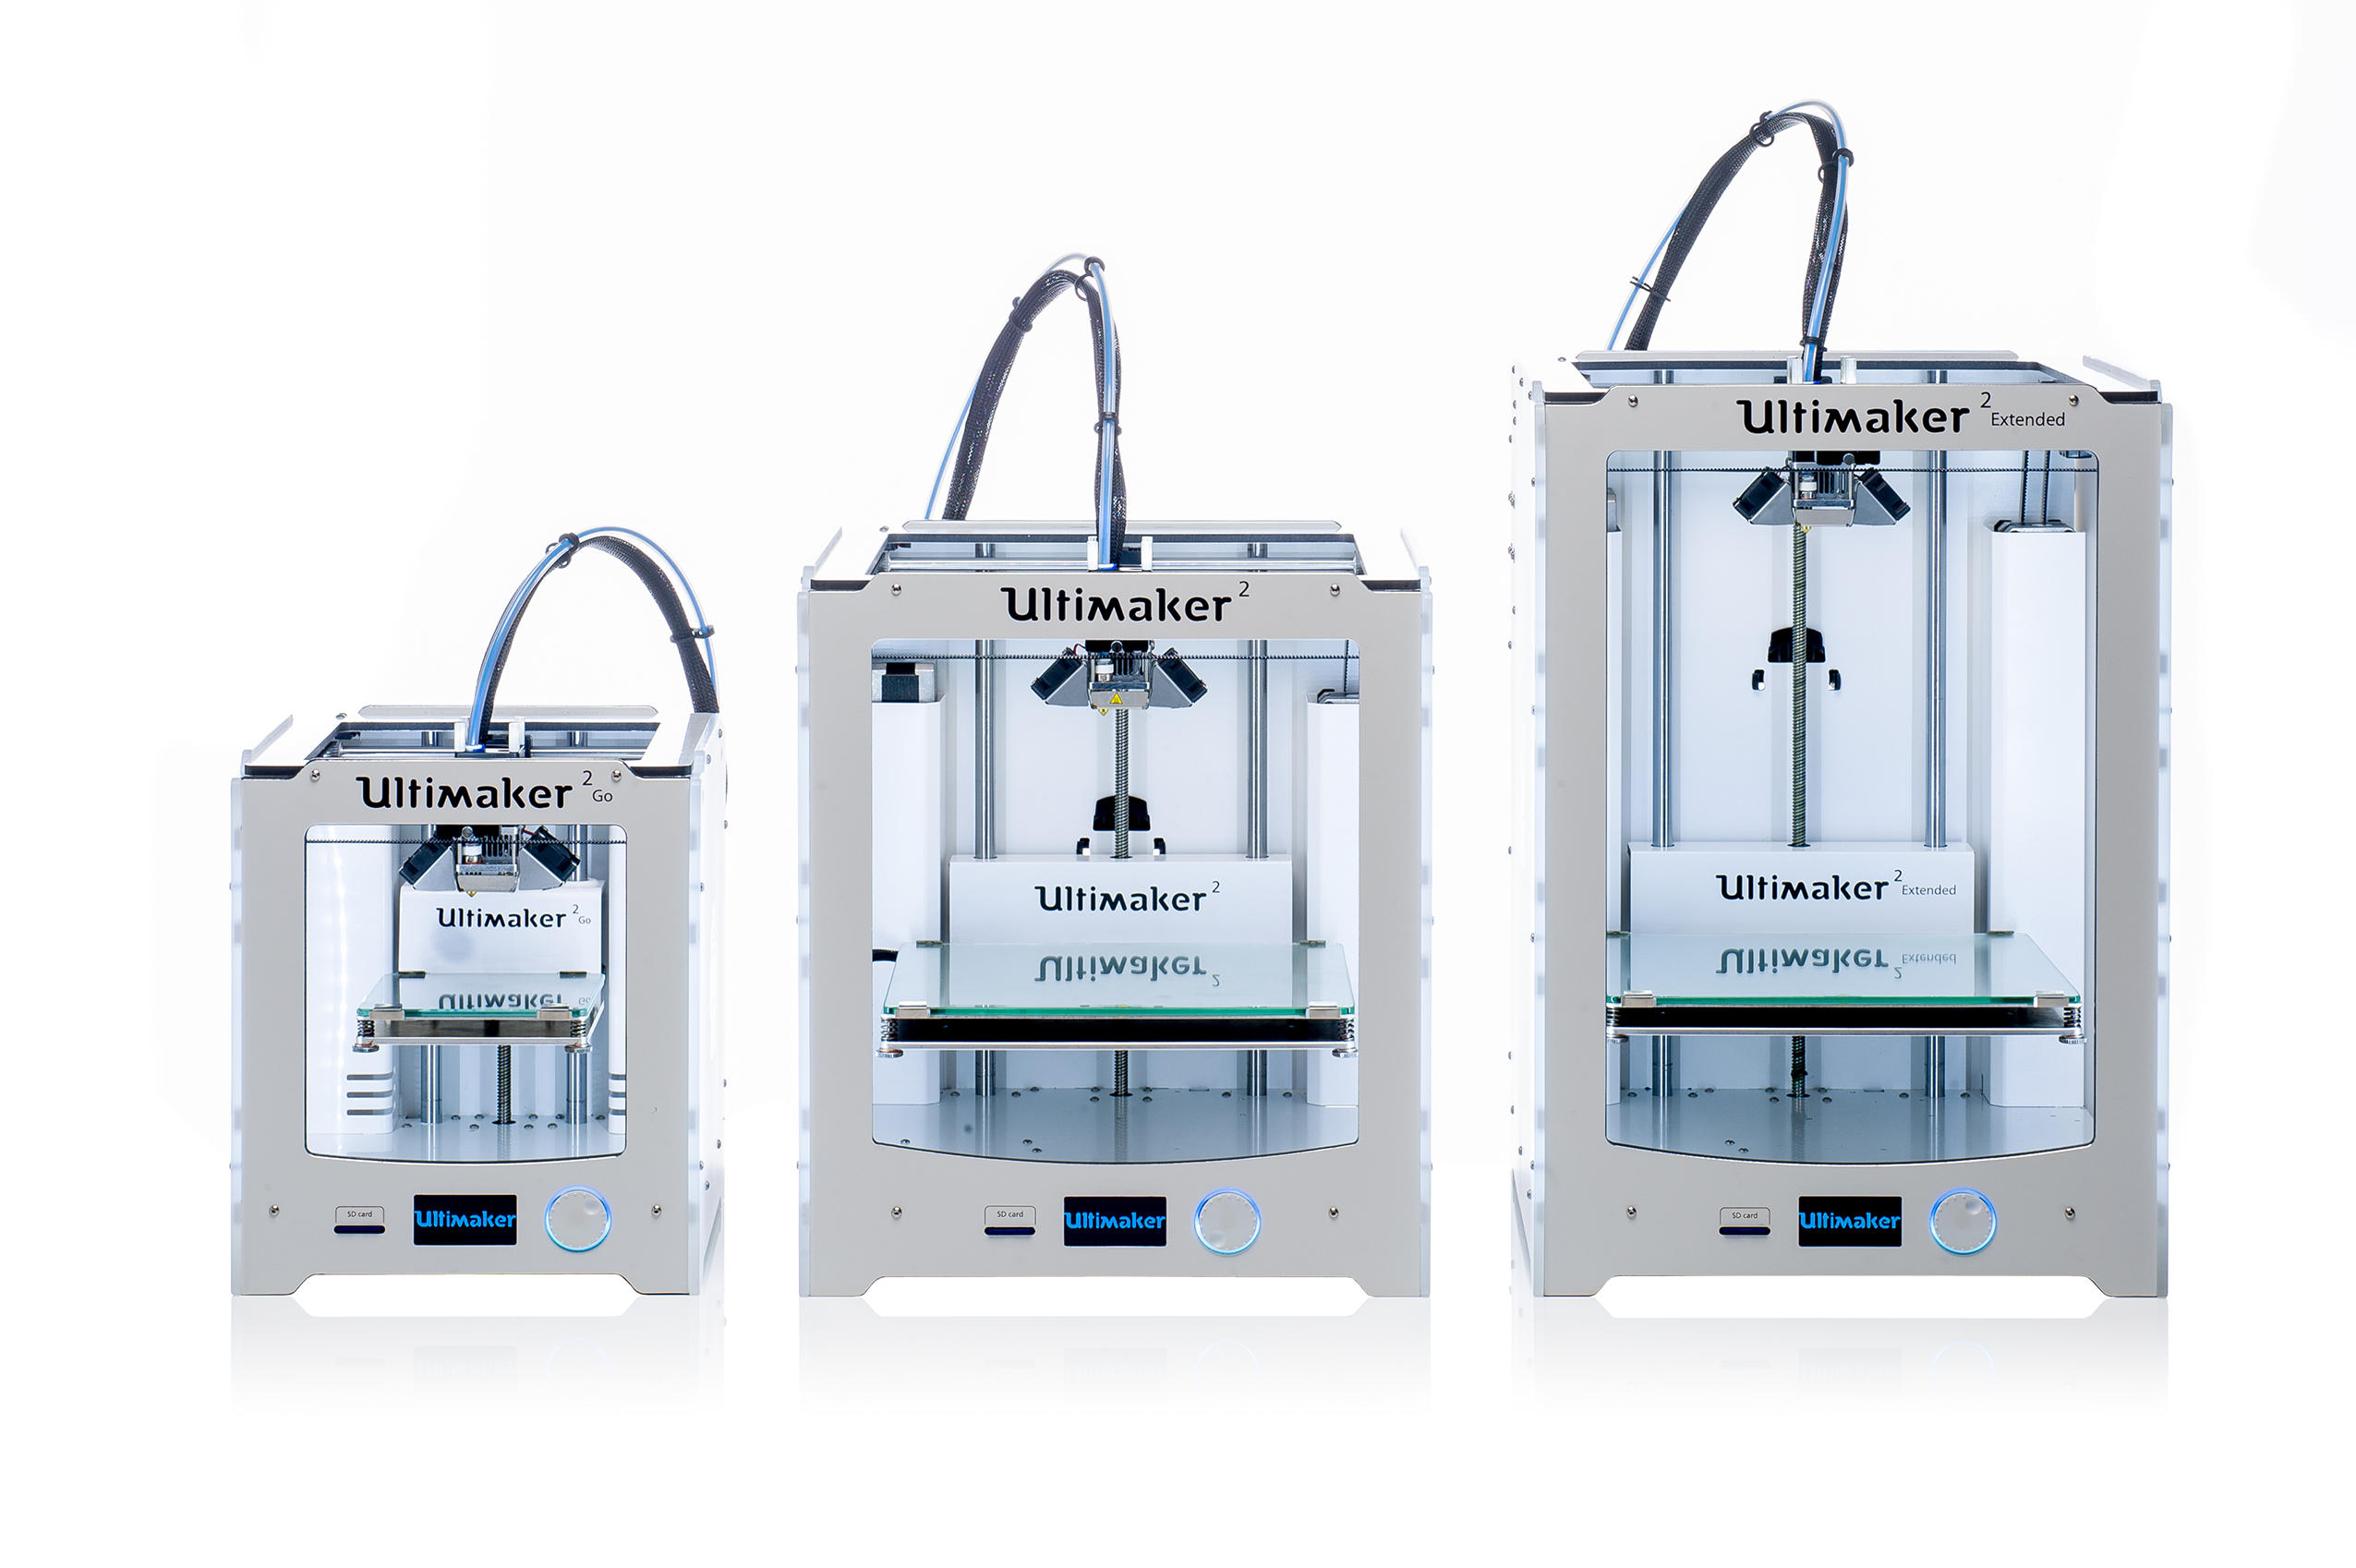 Ultimaker Family